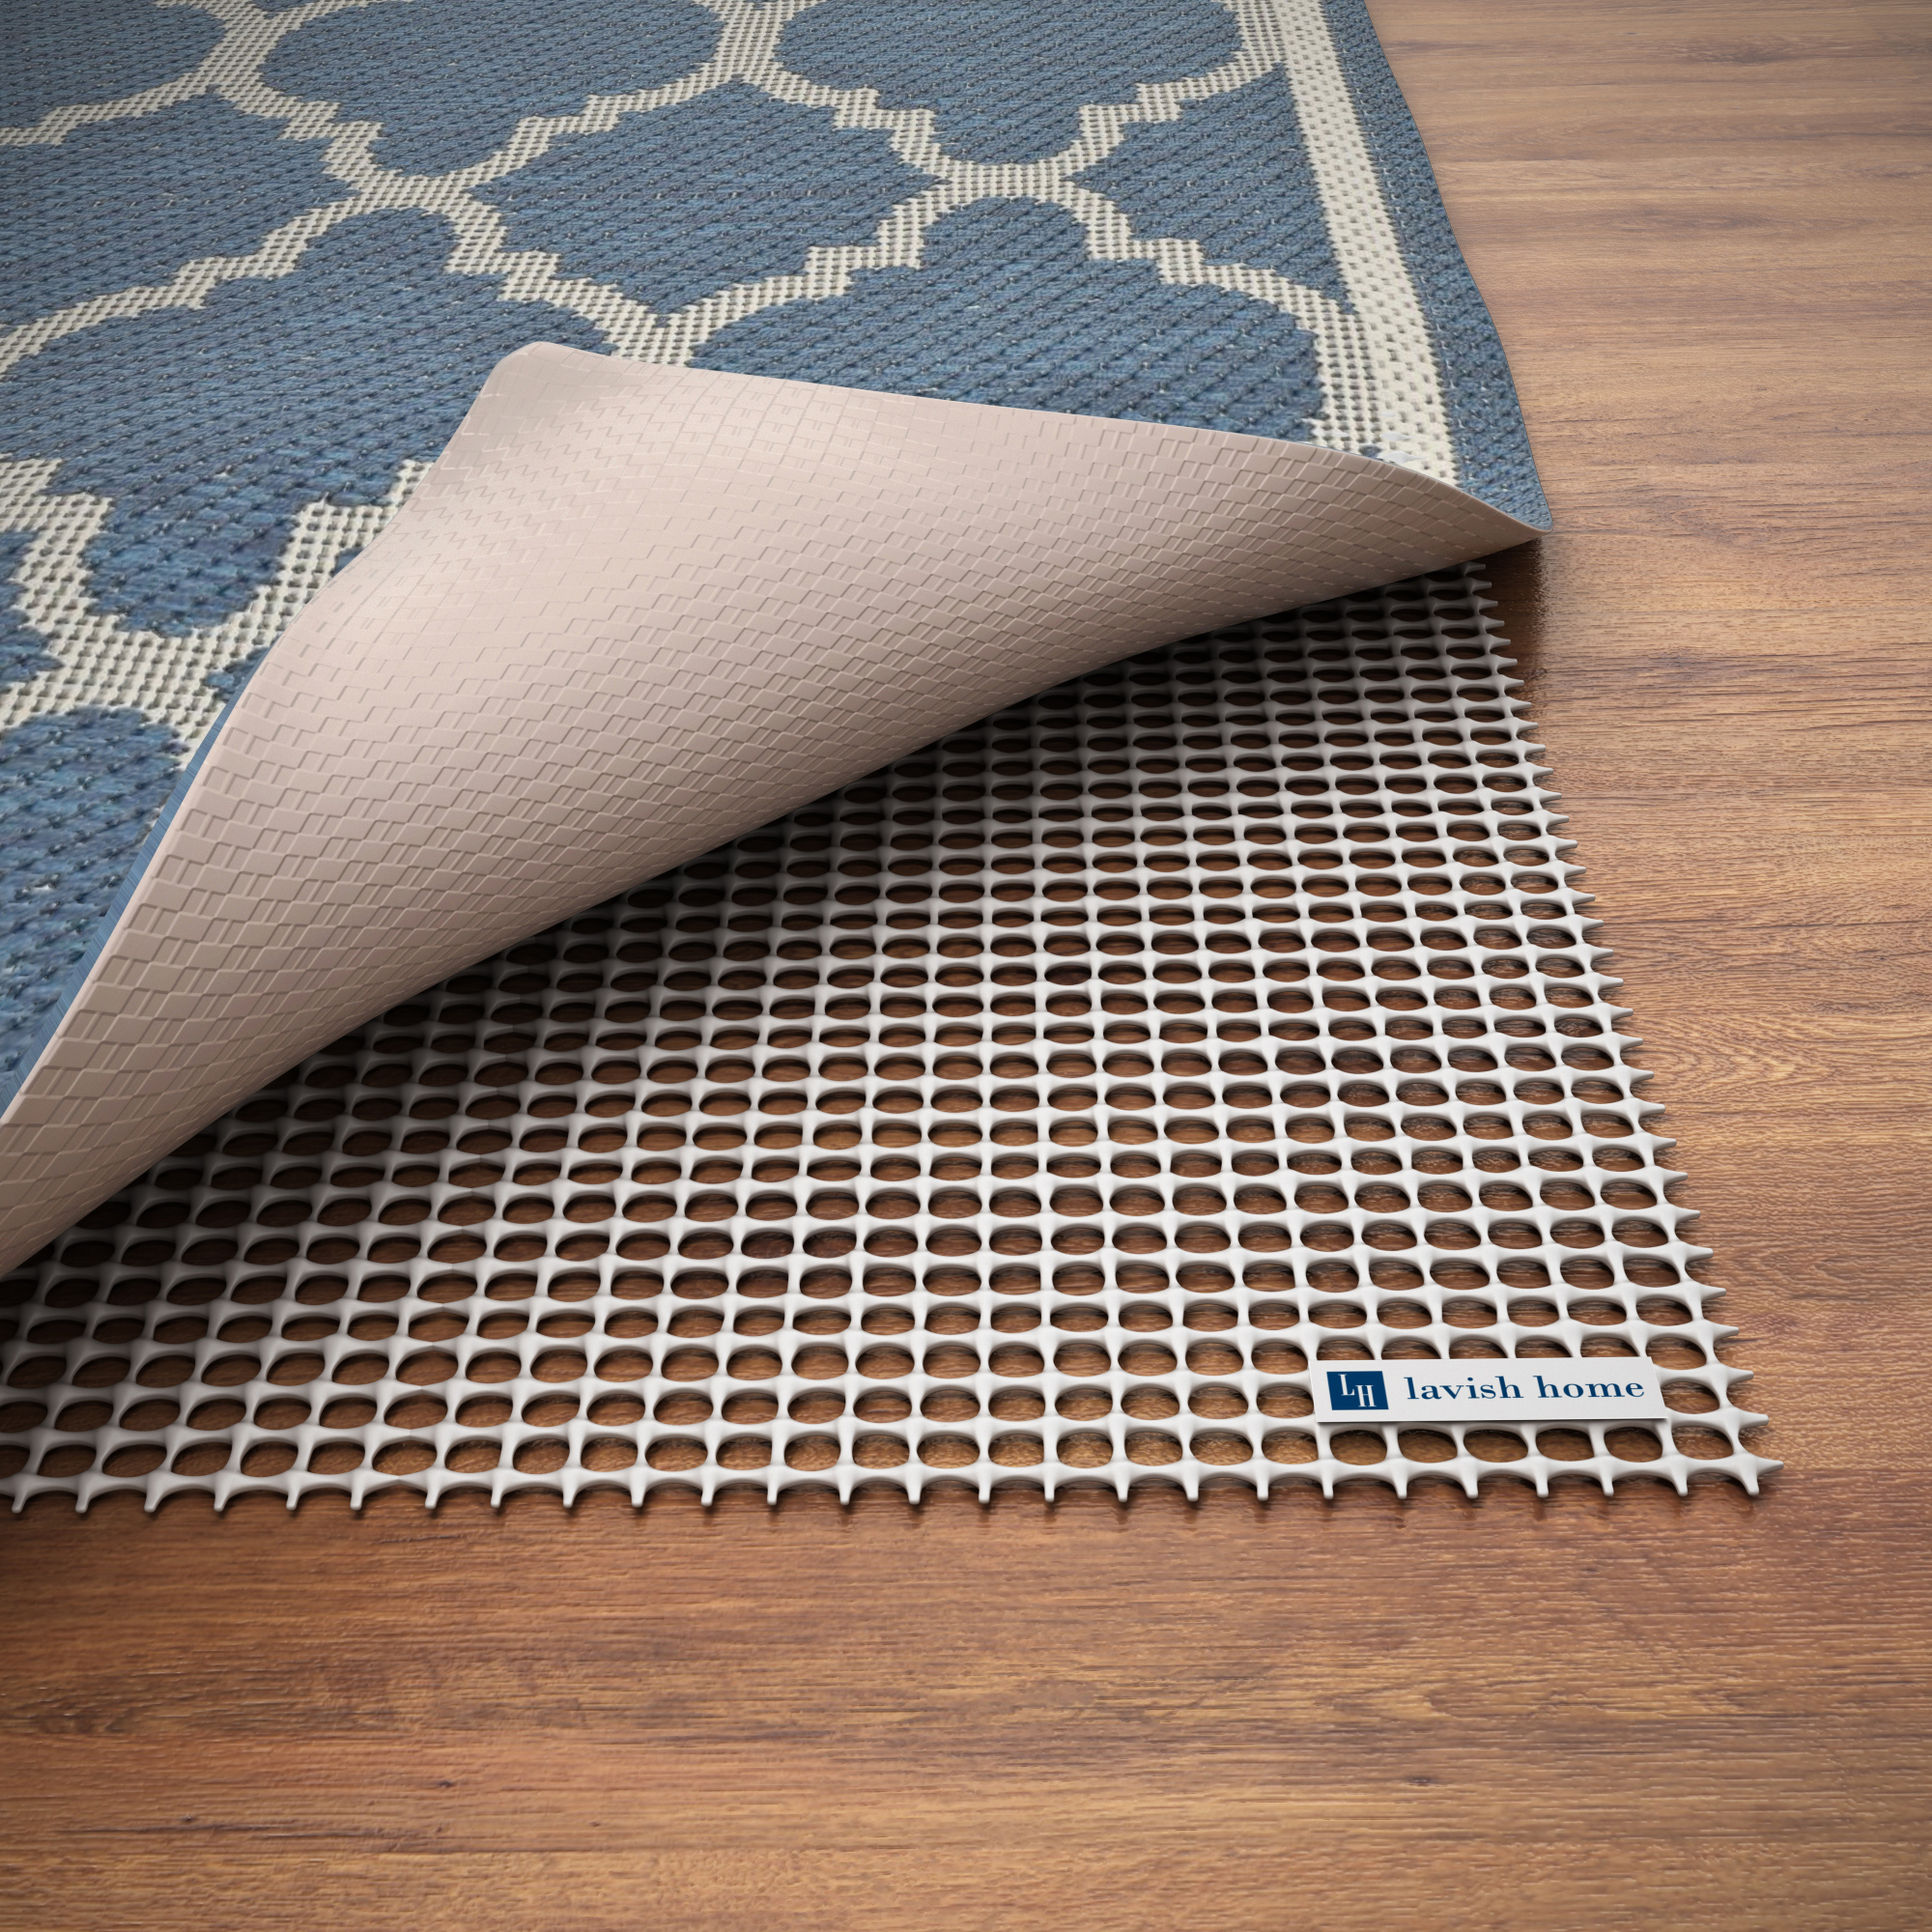 Non Slip Rug Pad  Rubber Non Skid Gripper For Area Rugs On Hard Surfaces And